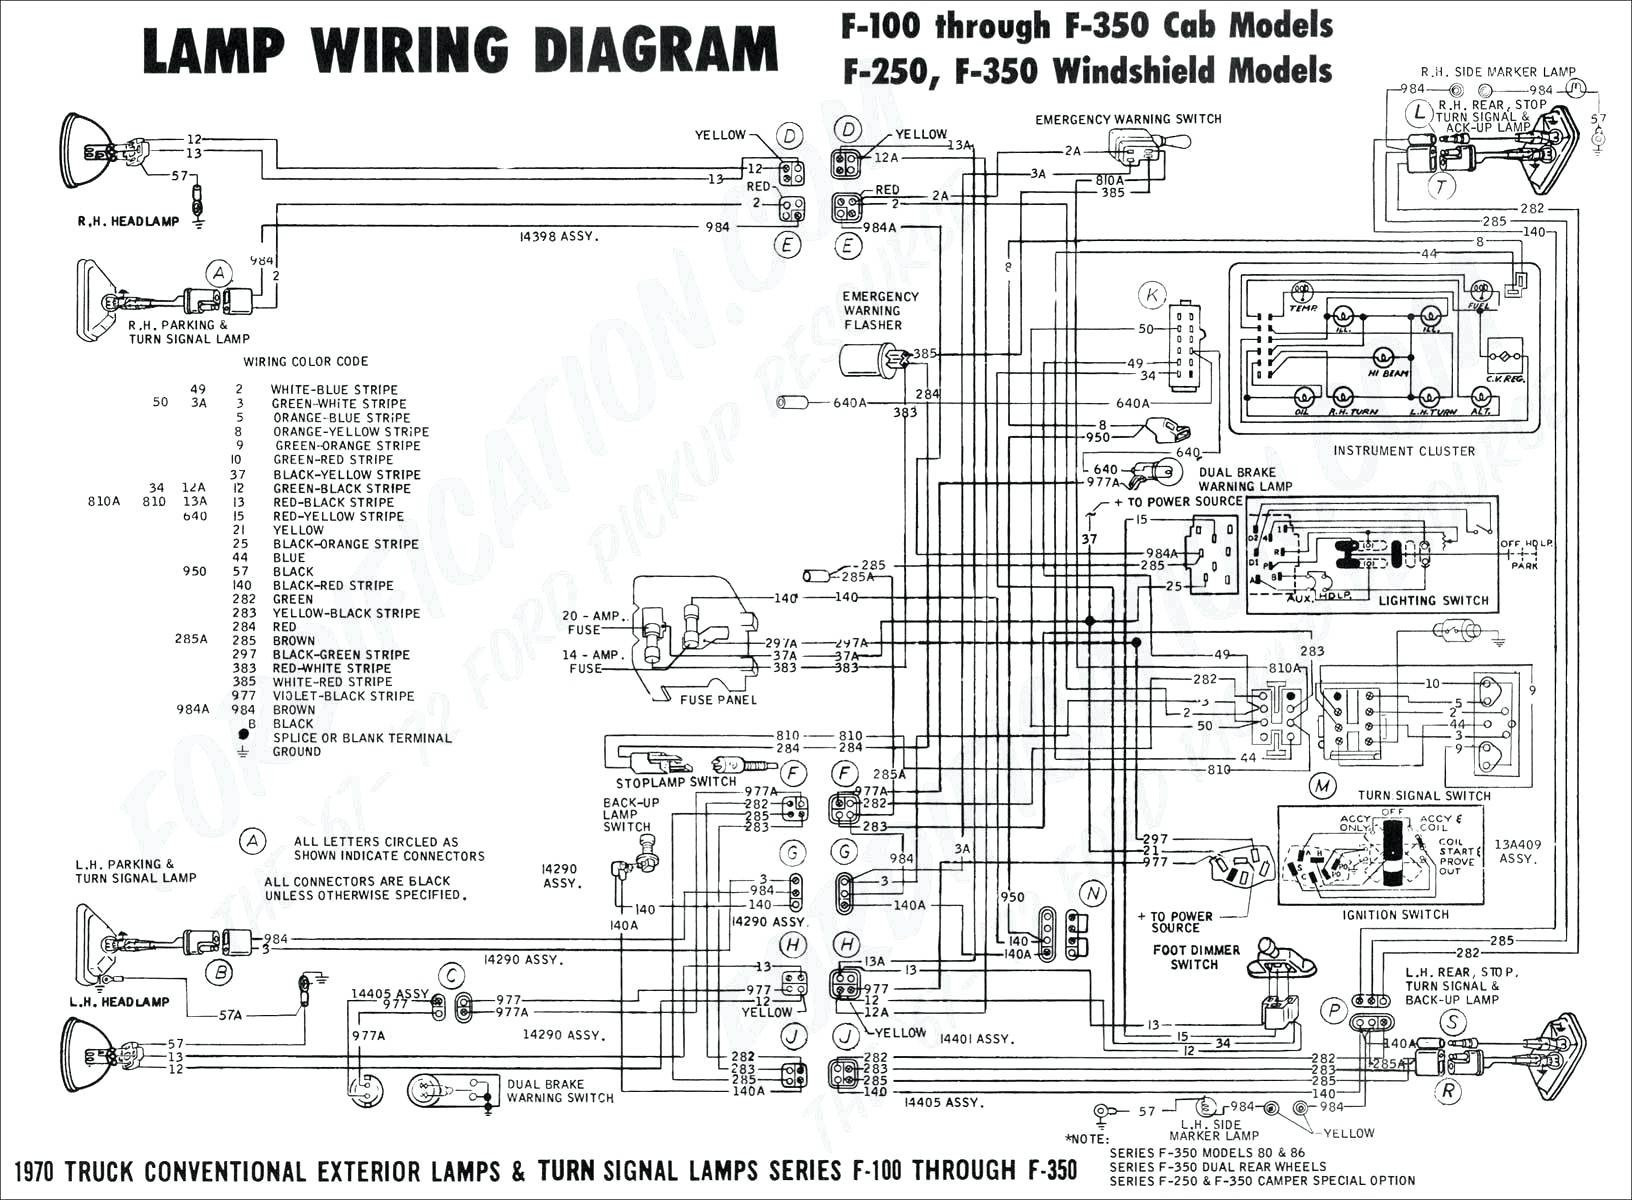 Brake Controller Wiring Diagram Dodge Ram New Dodge Ram Trailer - Trailer Wiring Diagram For Dodge Ram